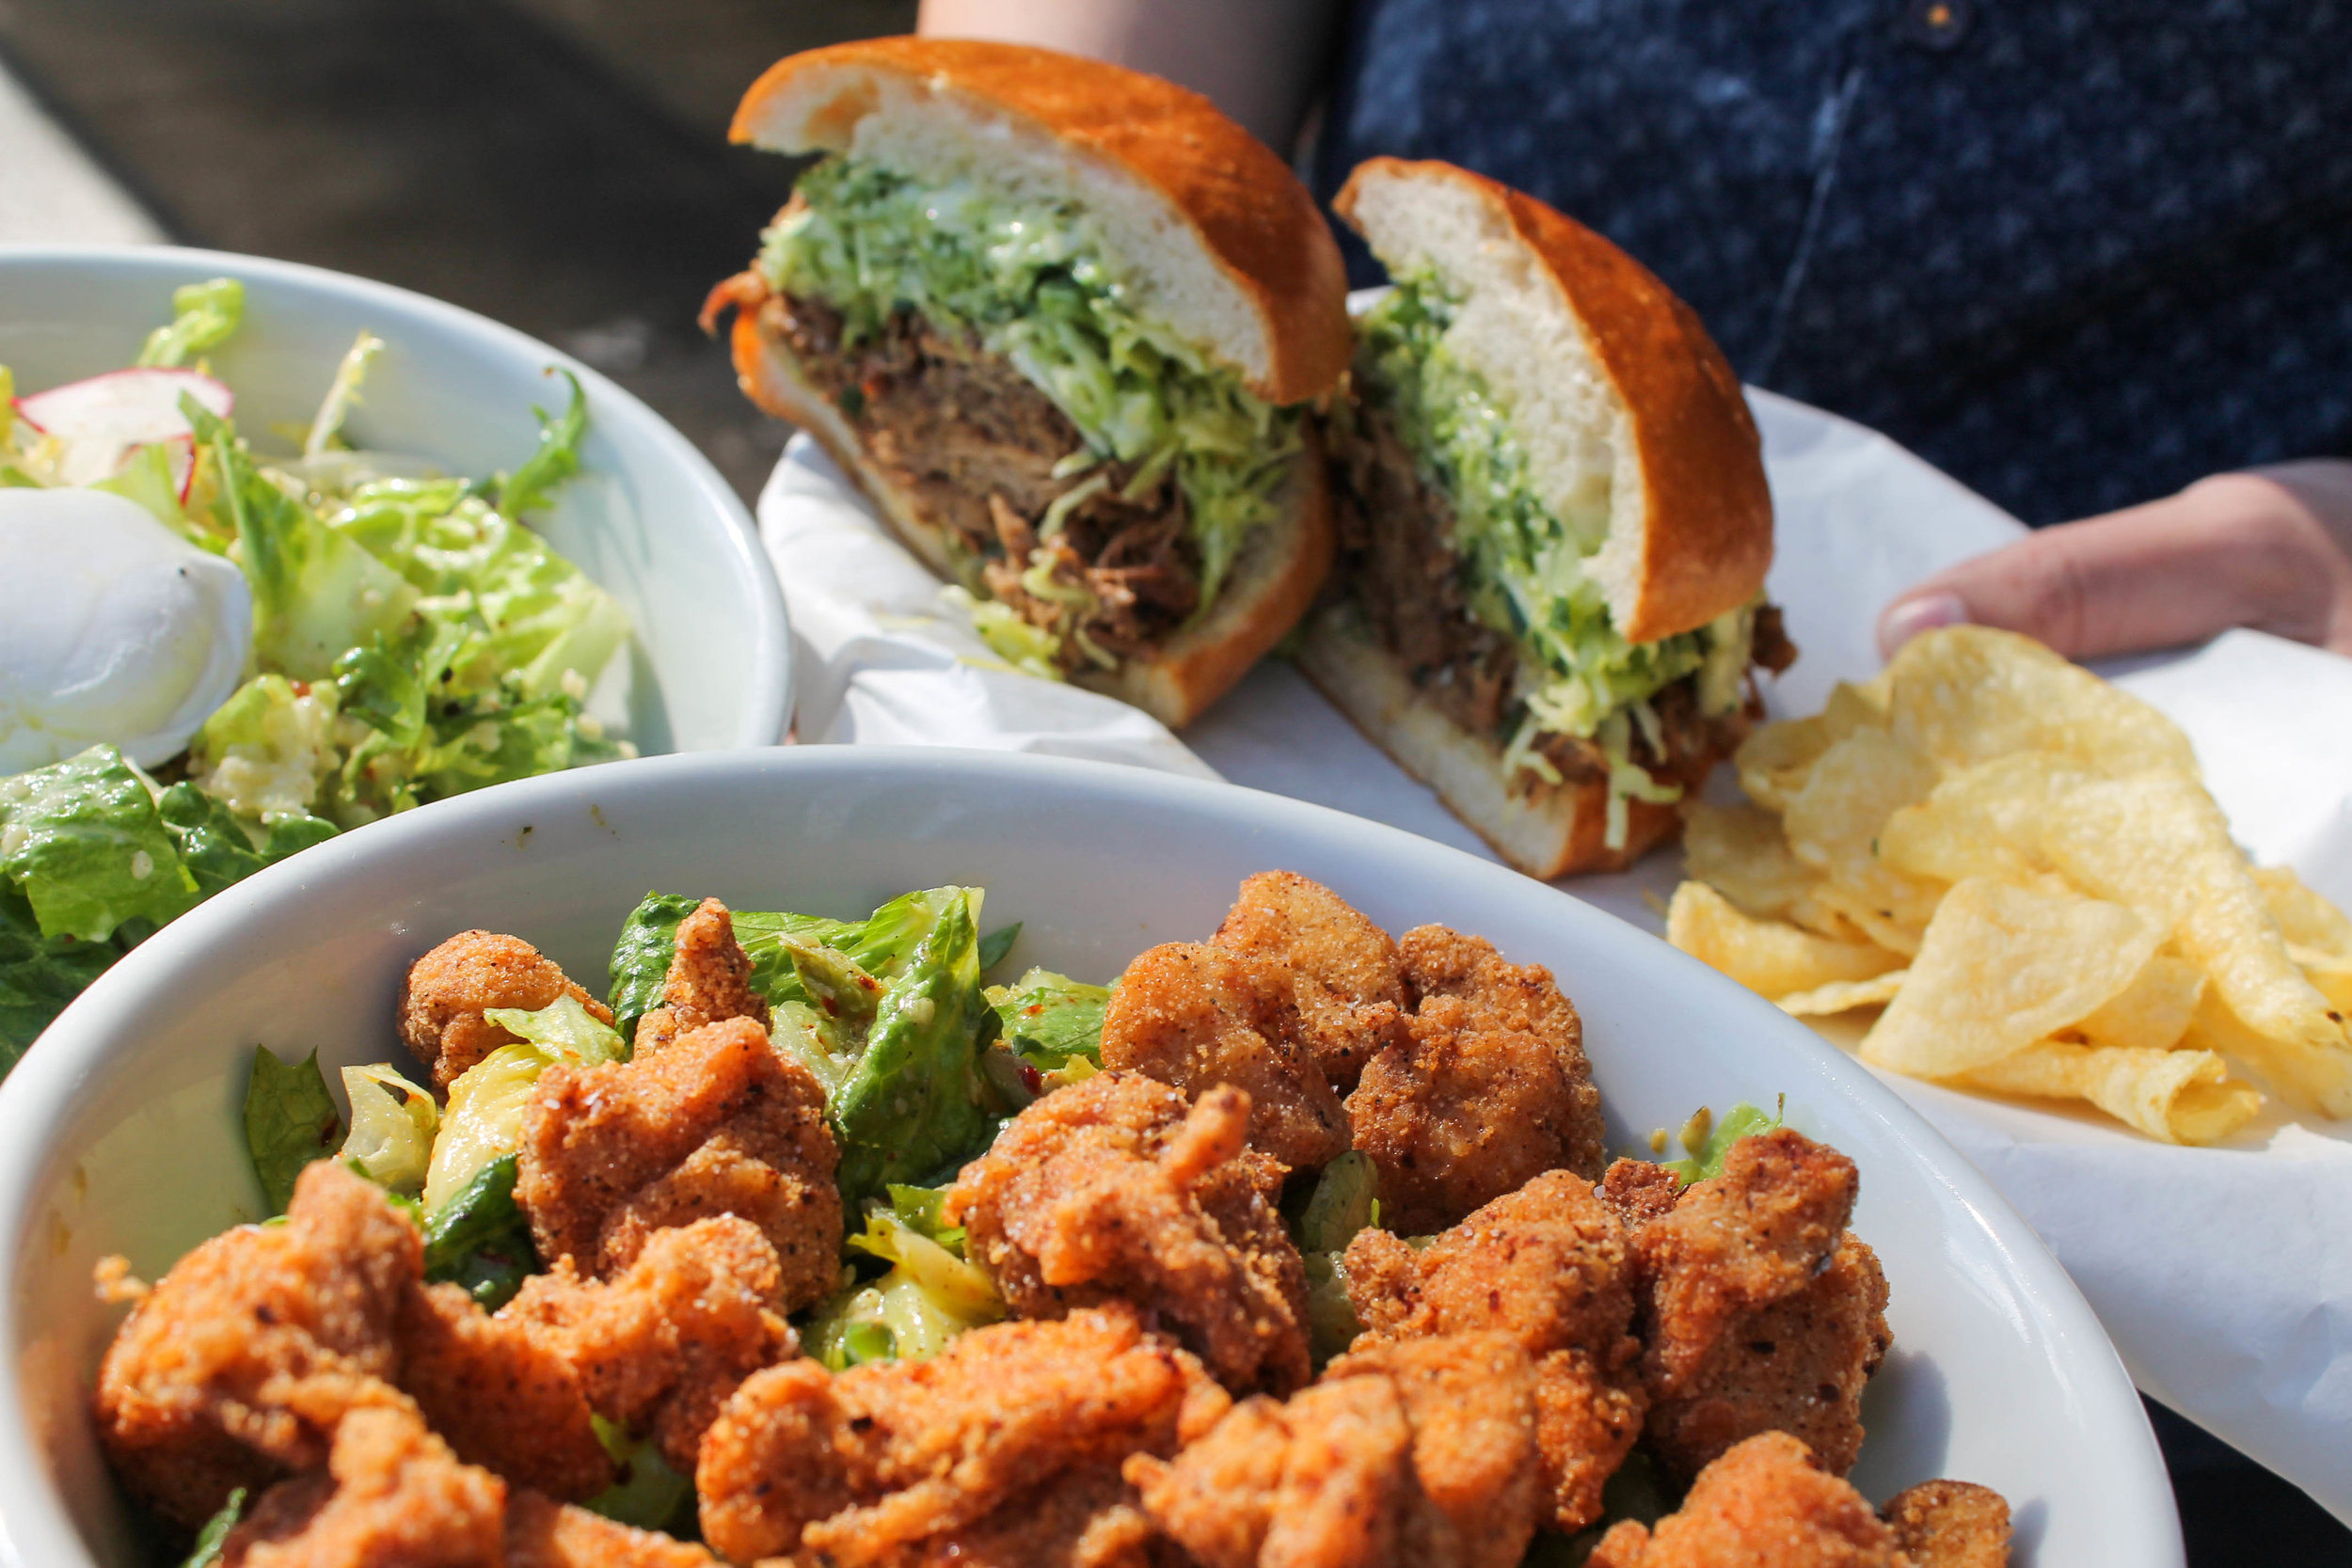 Fried chicken salad, poached egg and bacon salad, and their Spicy Hog sandwich